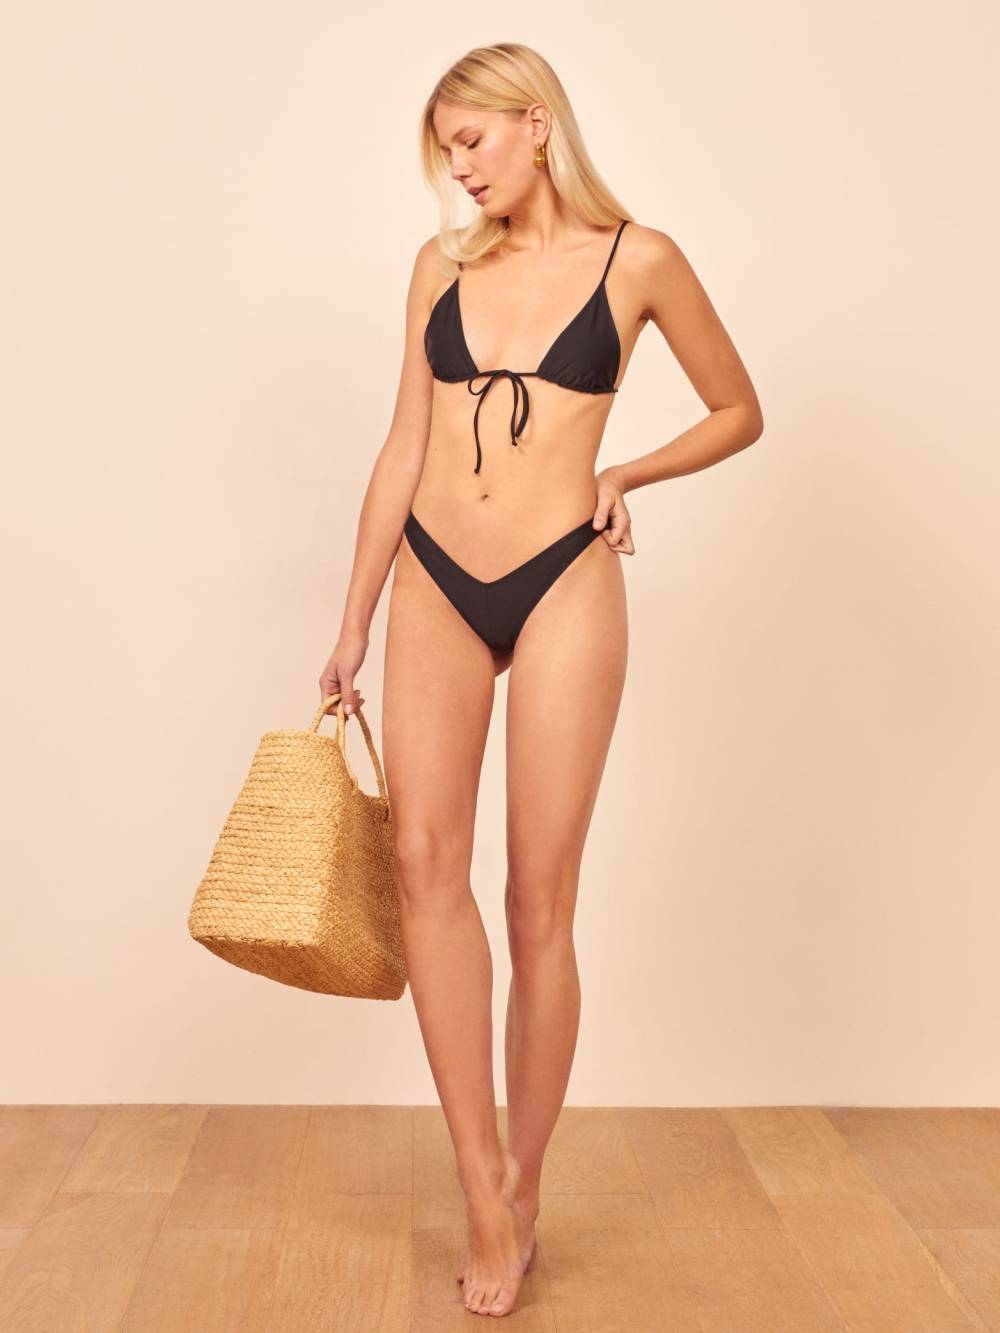 reformation eco-friendly bikini brand